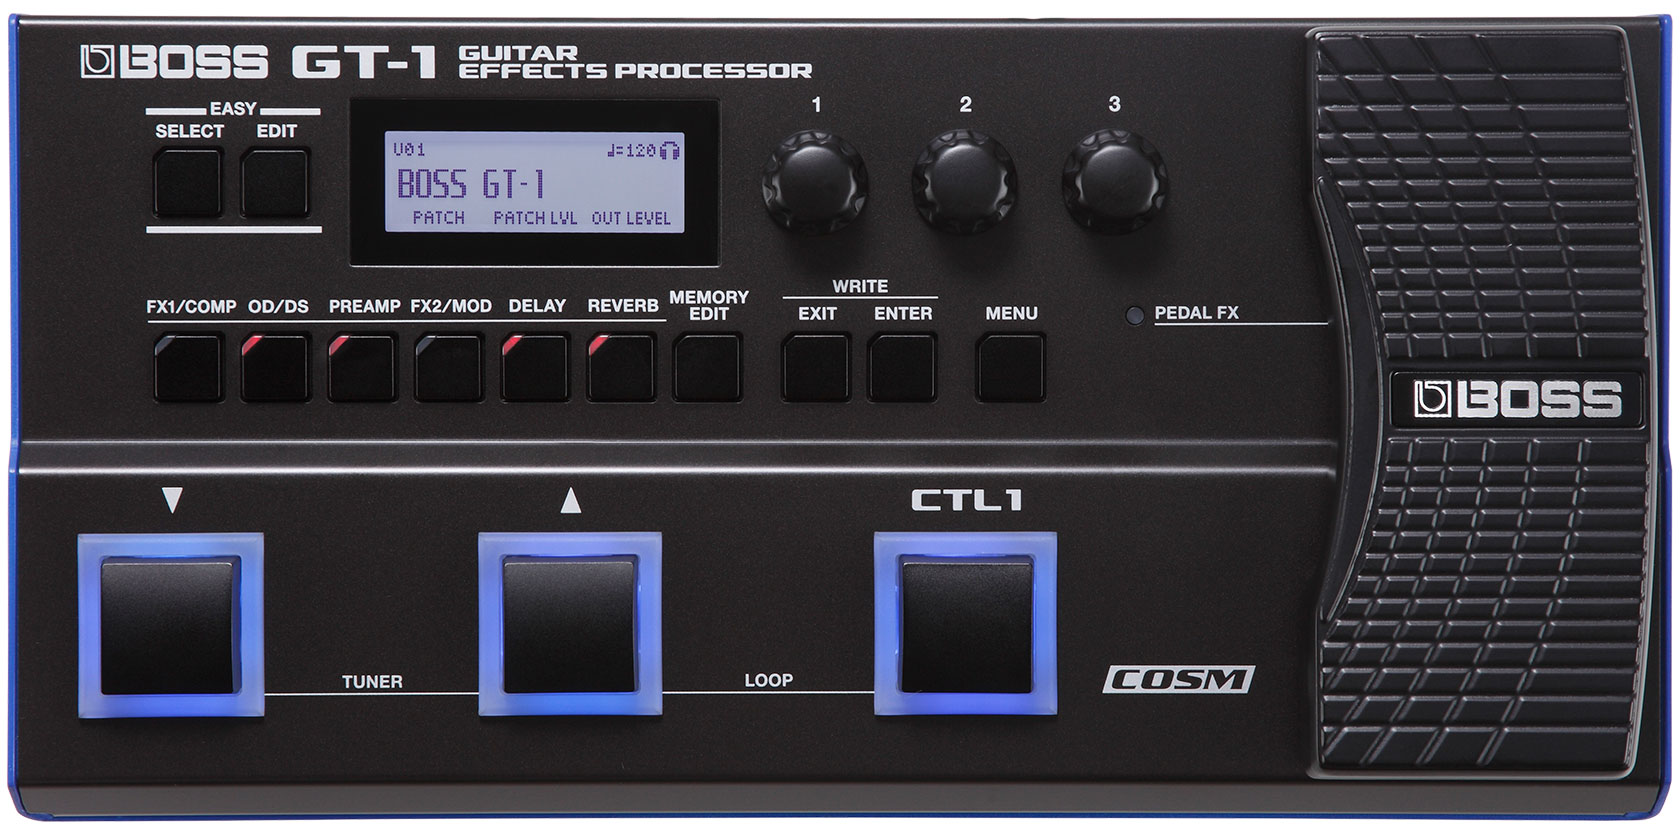 Boss Gt 1 Guitar Effects Processor Inserting A Tone Control Between Preamp And Power Amp